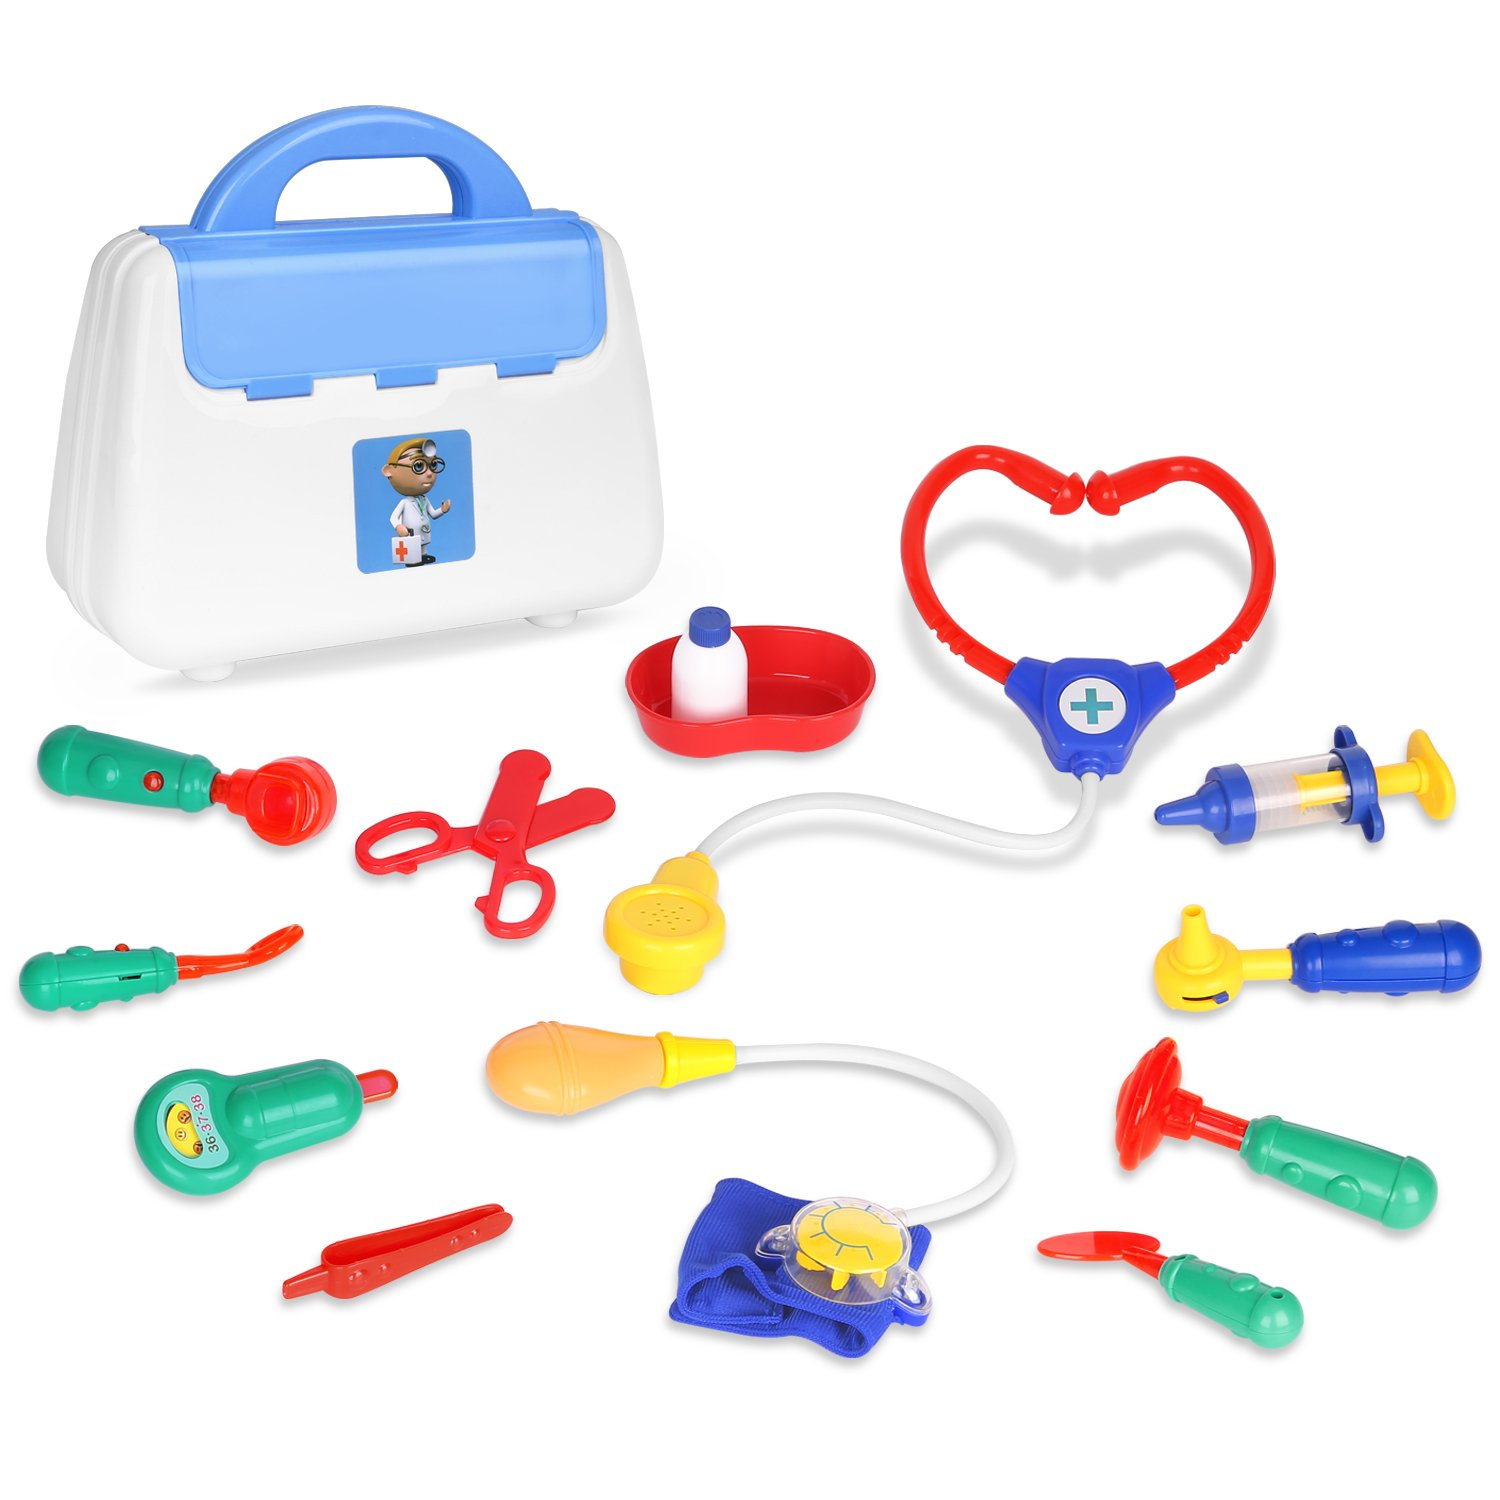 Zooawa Doctor Kits Pretend Play, Doctor and Nurse Set Role Play Toy with Handy Carrying Case for Boys and Girls, Kids and Toddlers Over 3 Years Old, Colorful